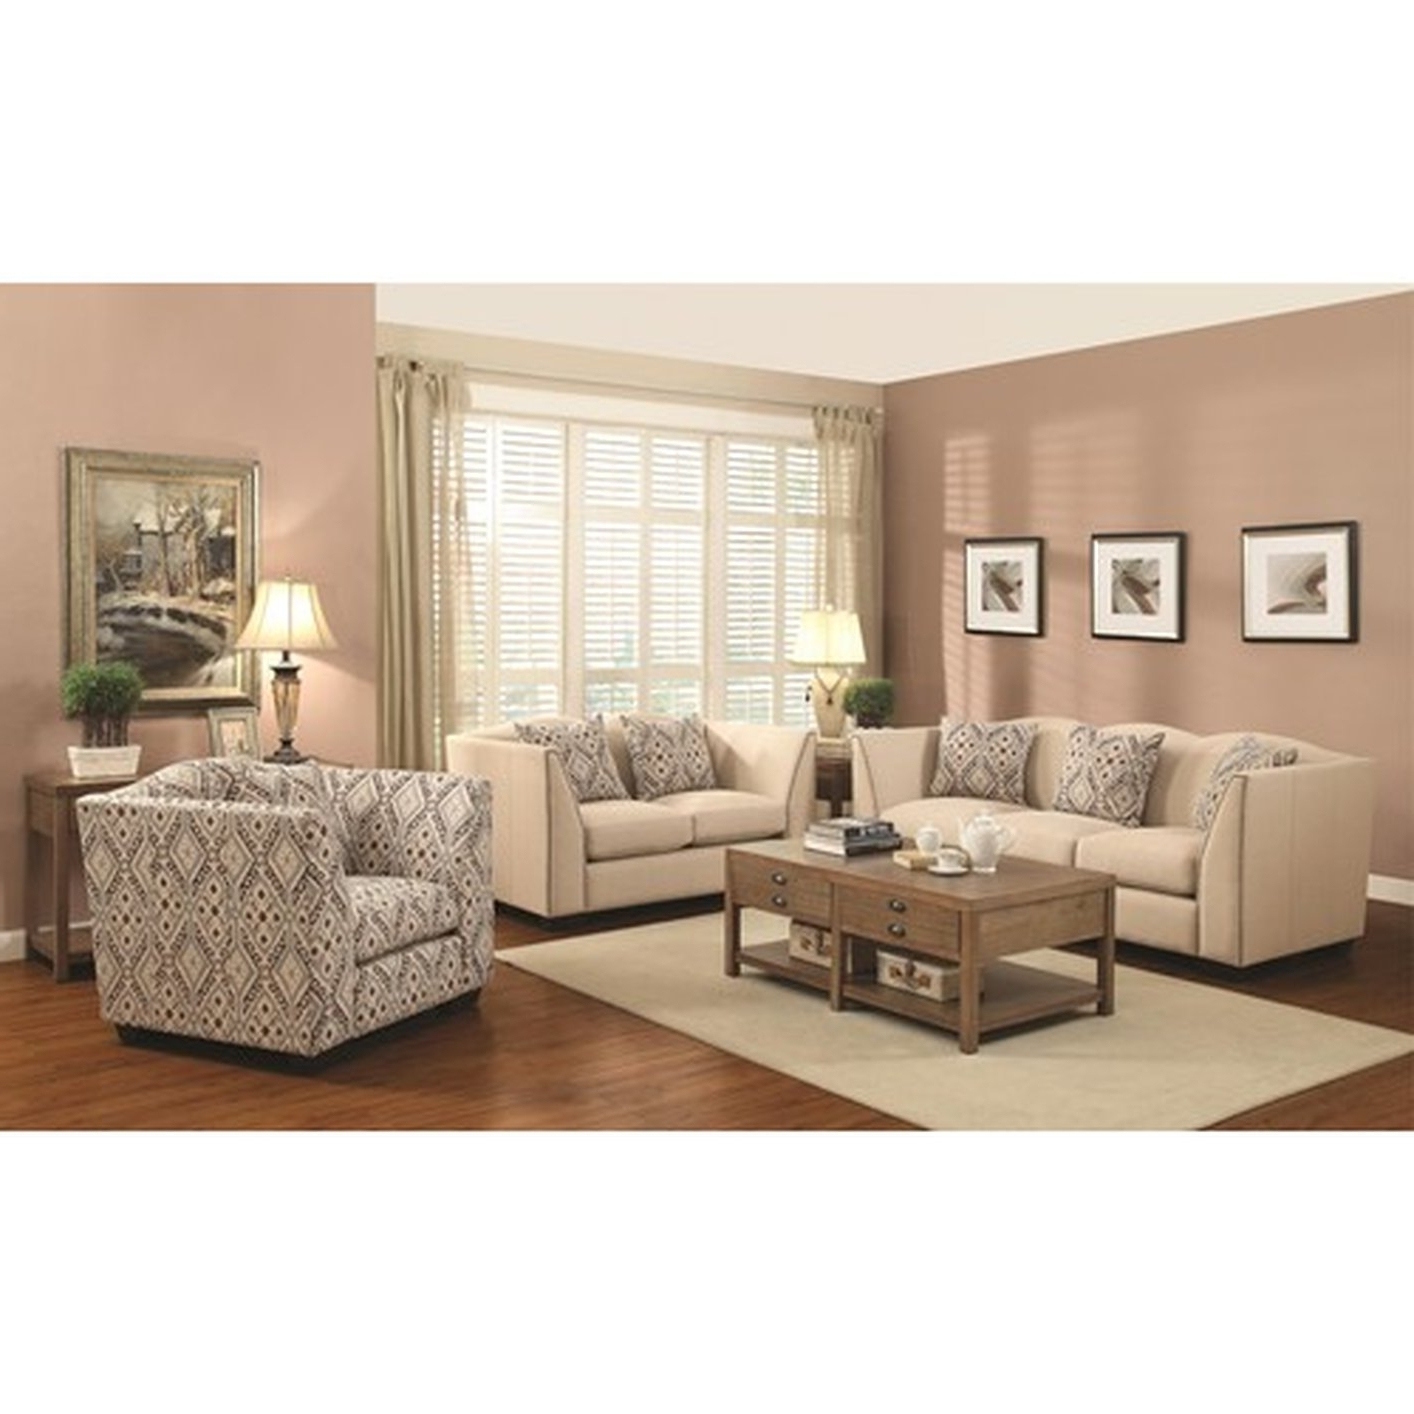 Preferred Accent Sofa Chairs Pertaining To Siana Beige Fabric Accent Chair – Steal A Sofa Furniture Outlet (View 3 of 15)